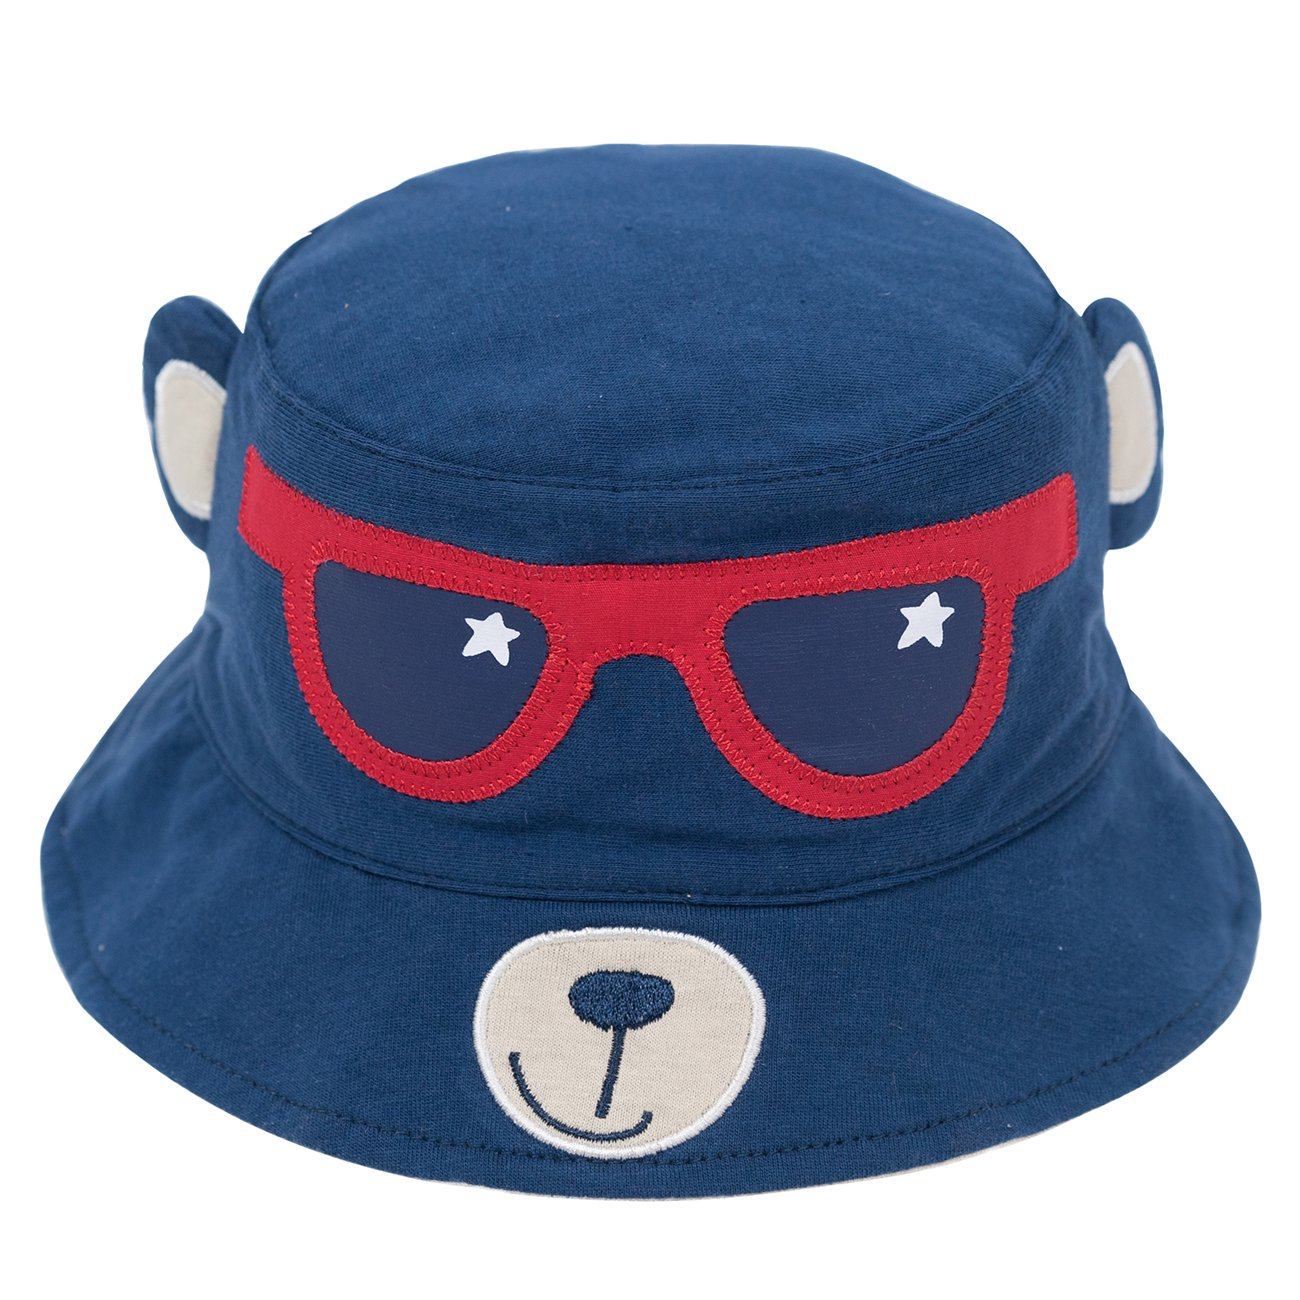 Eriso Baby Toddler Kids Breathable Sun Hat Animal Bucket, Stay-On ((19.6'') 12-24 Months, Navy Bear)